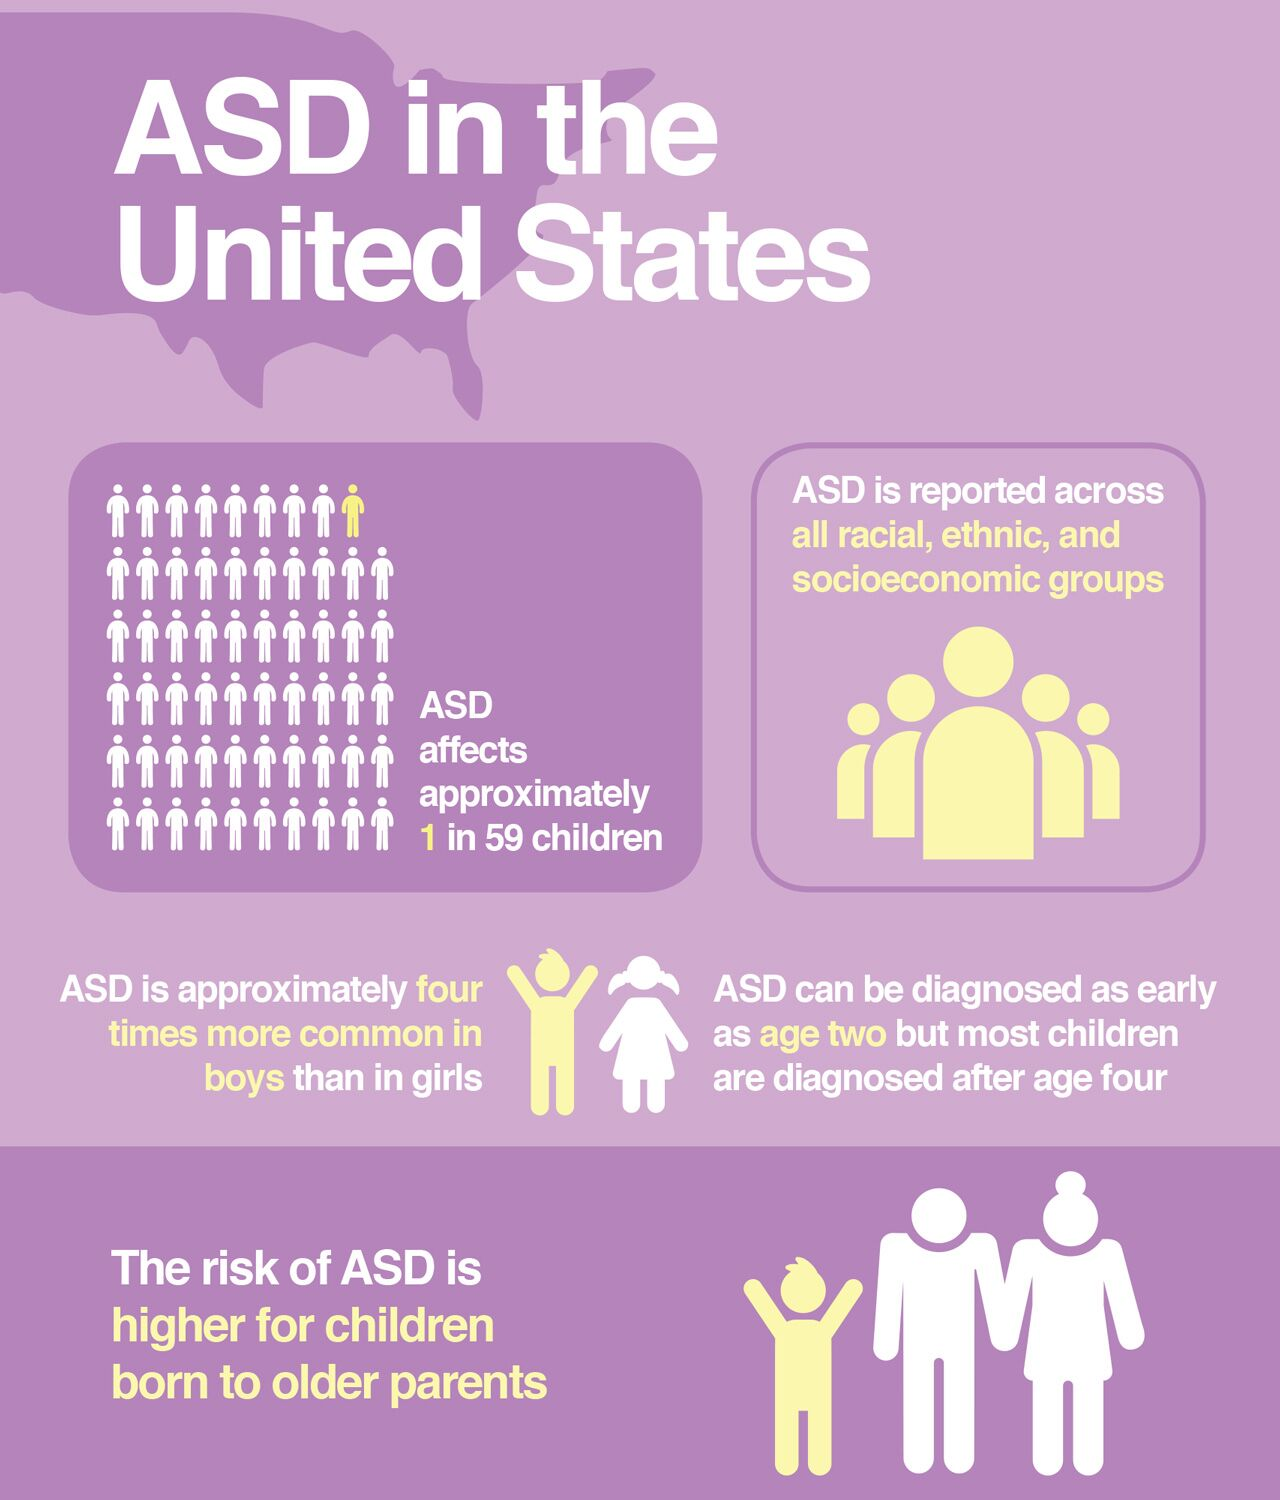 Facts About ASD in the United States